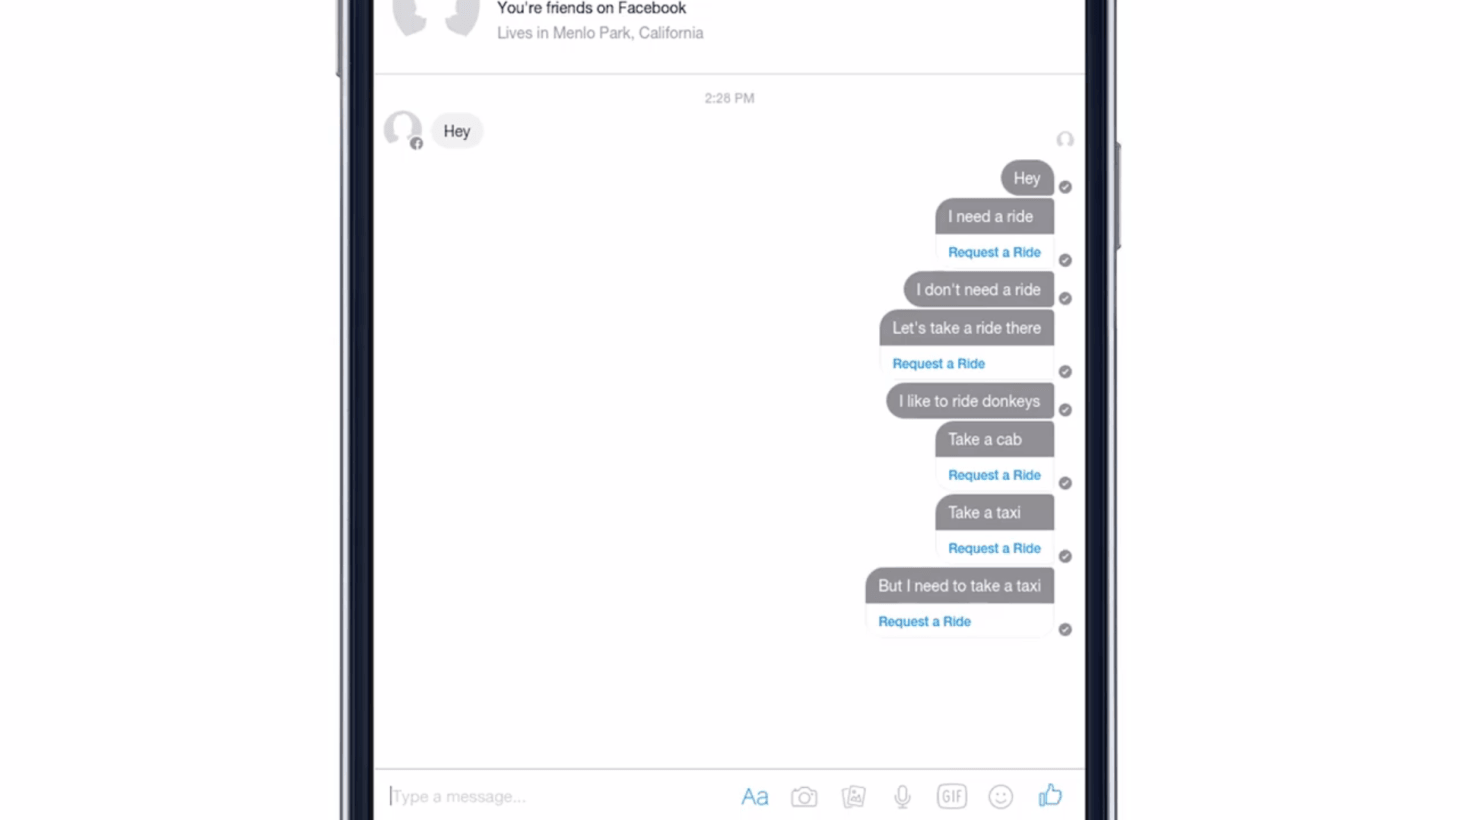 All your dumb posts are making Facebook's DeepText AI smarter